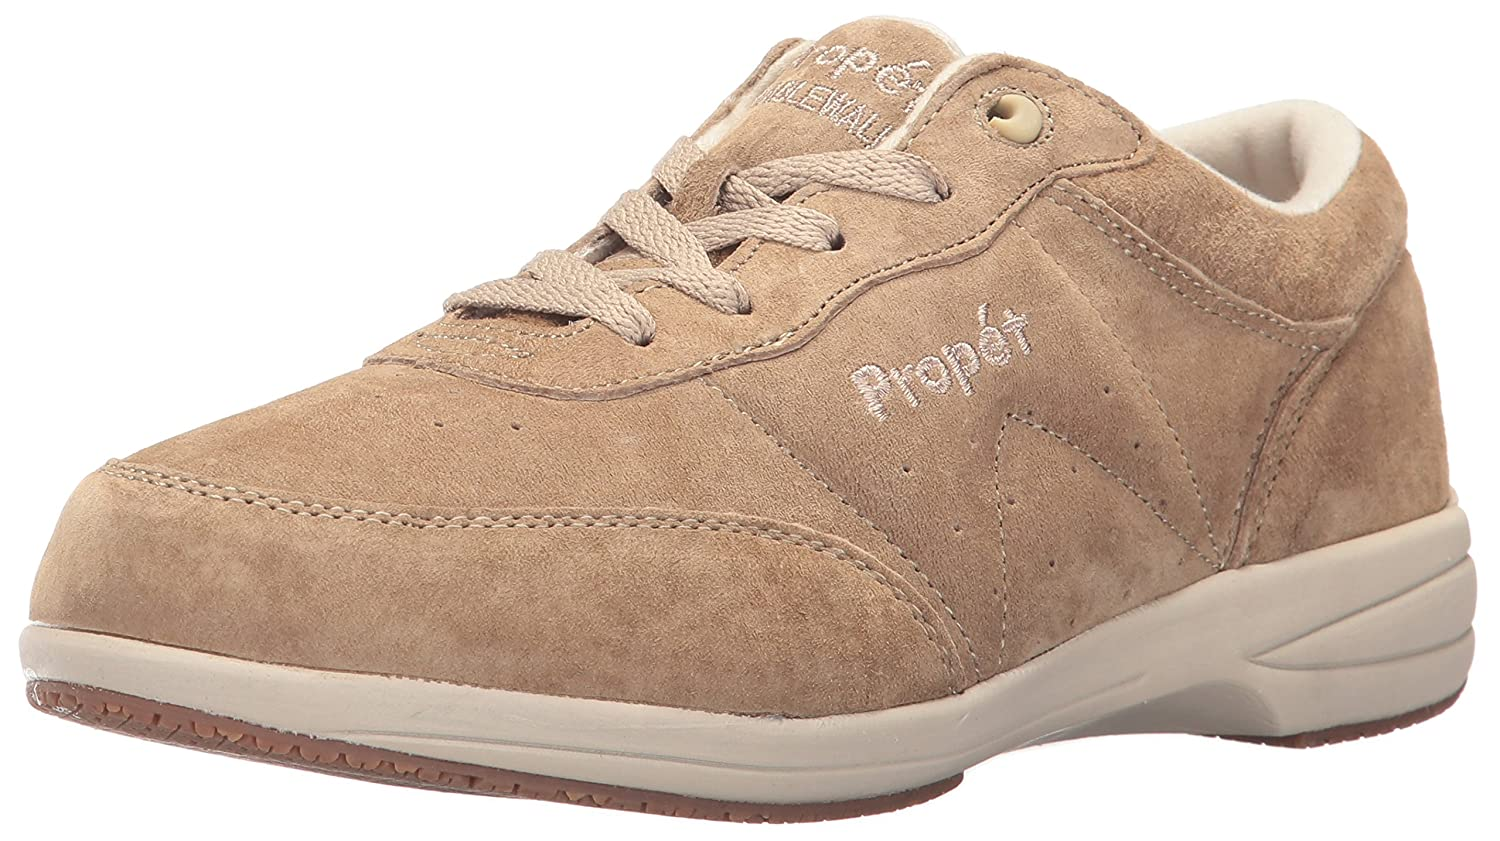 Propet Women's Washable Walker Sneaker B01MRS0CX0 11 2E|Sr Taupe